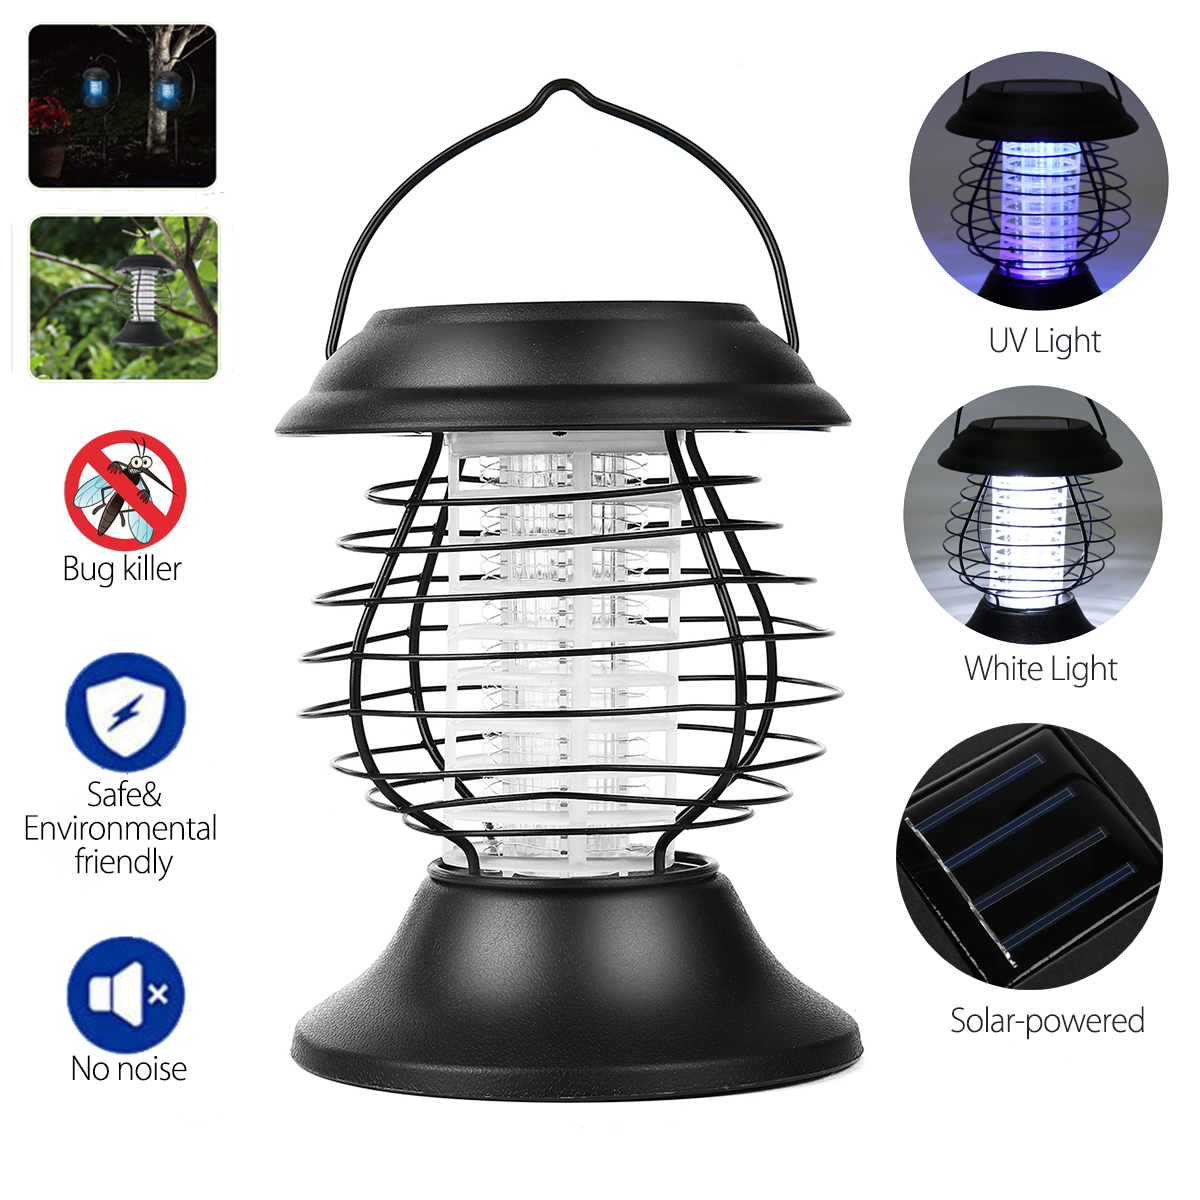 1.2V 0.5W Solar LED Mosquito Dispeller Repeller Mosquito Killer Lamp Bulb Electric Bug Insect Zapper Pest Trap Light For Yard Outdoor Camping